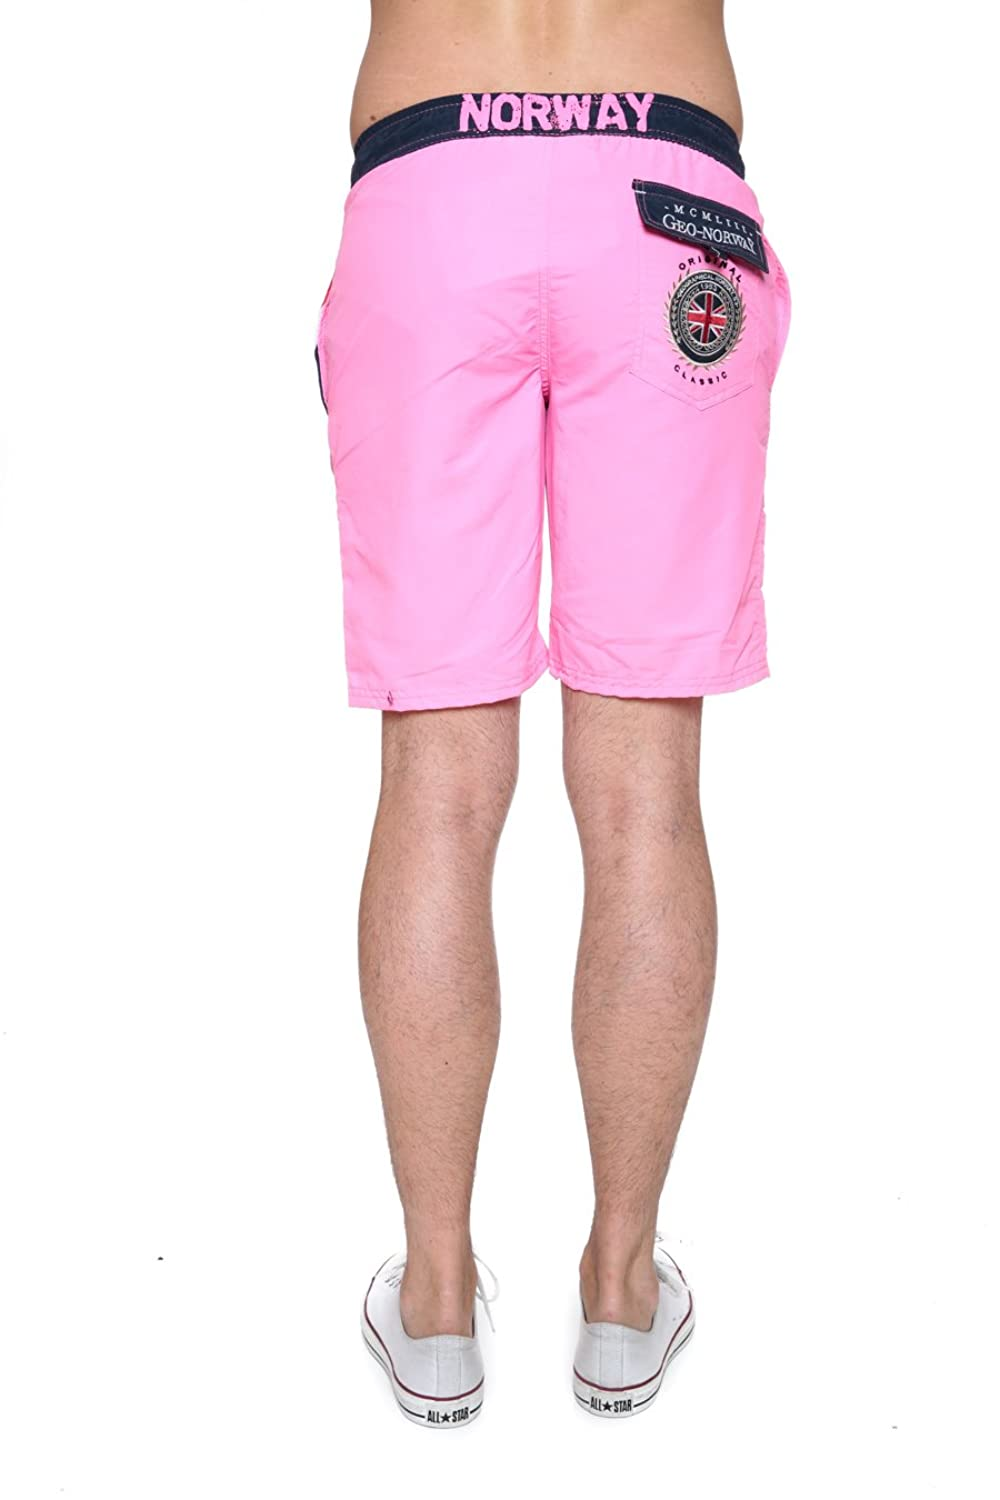 Geographical Norway?-?T-Shirt Geographical Norway quercuss Swimsuit Pink